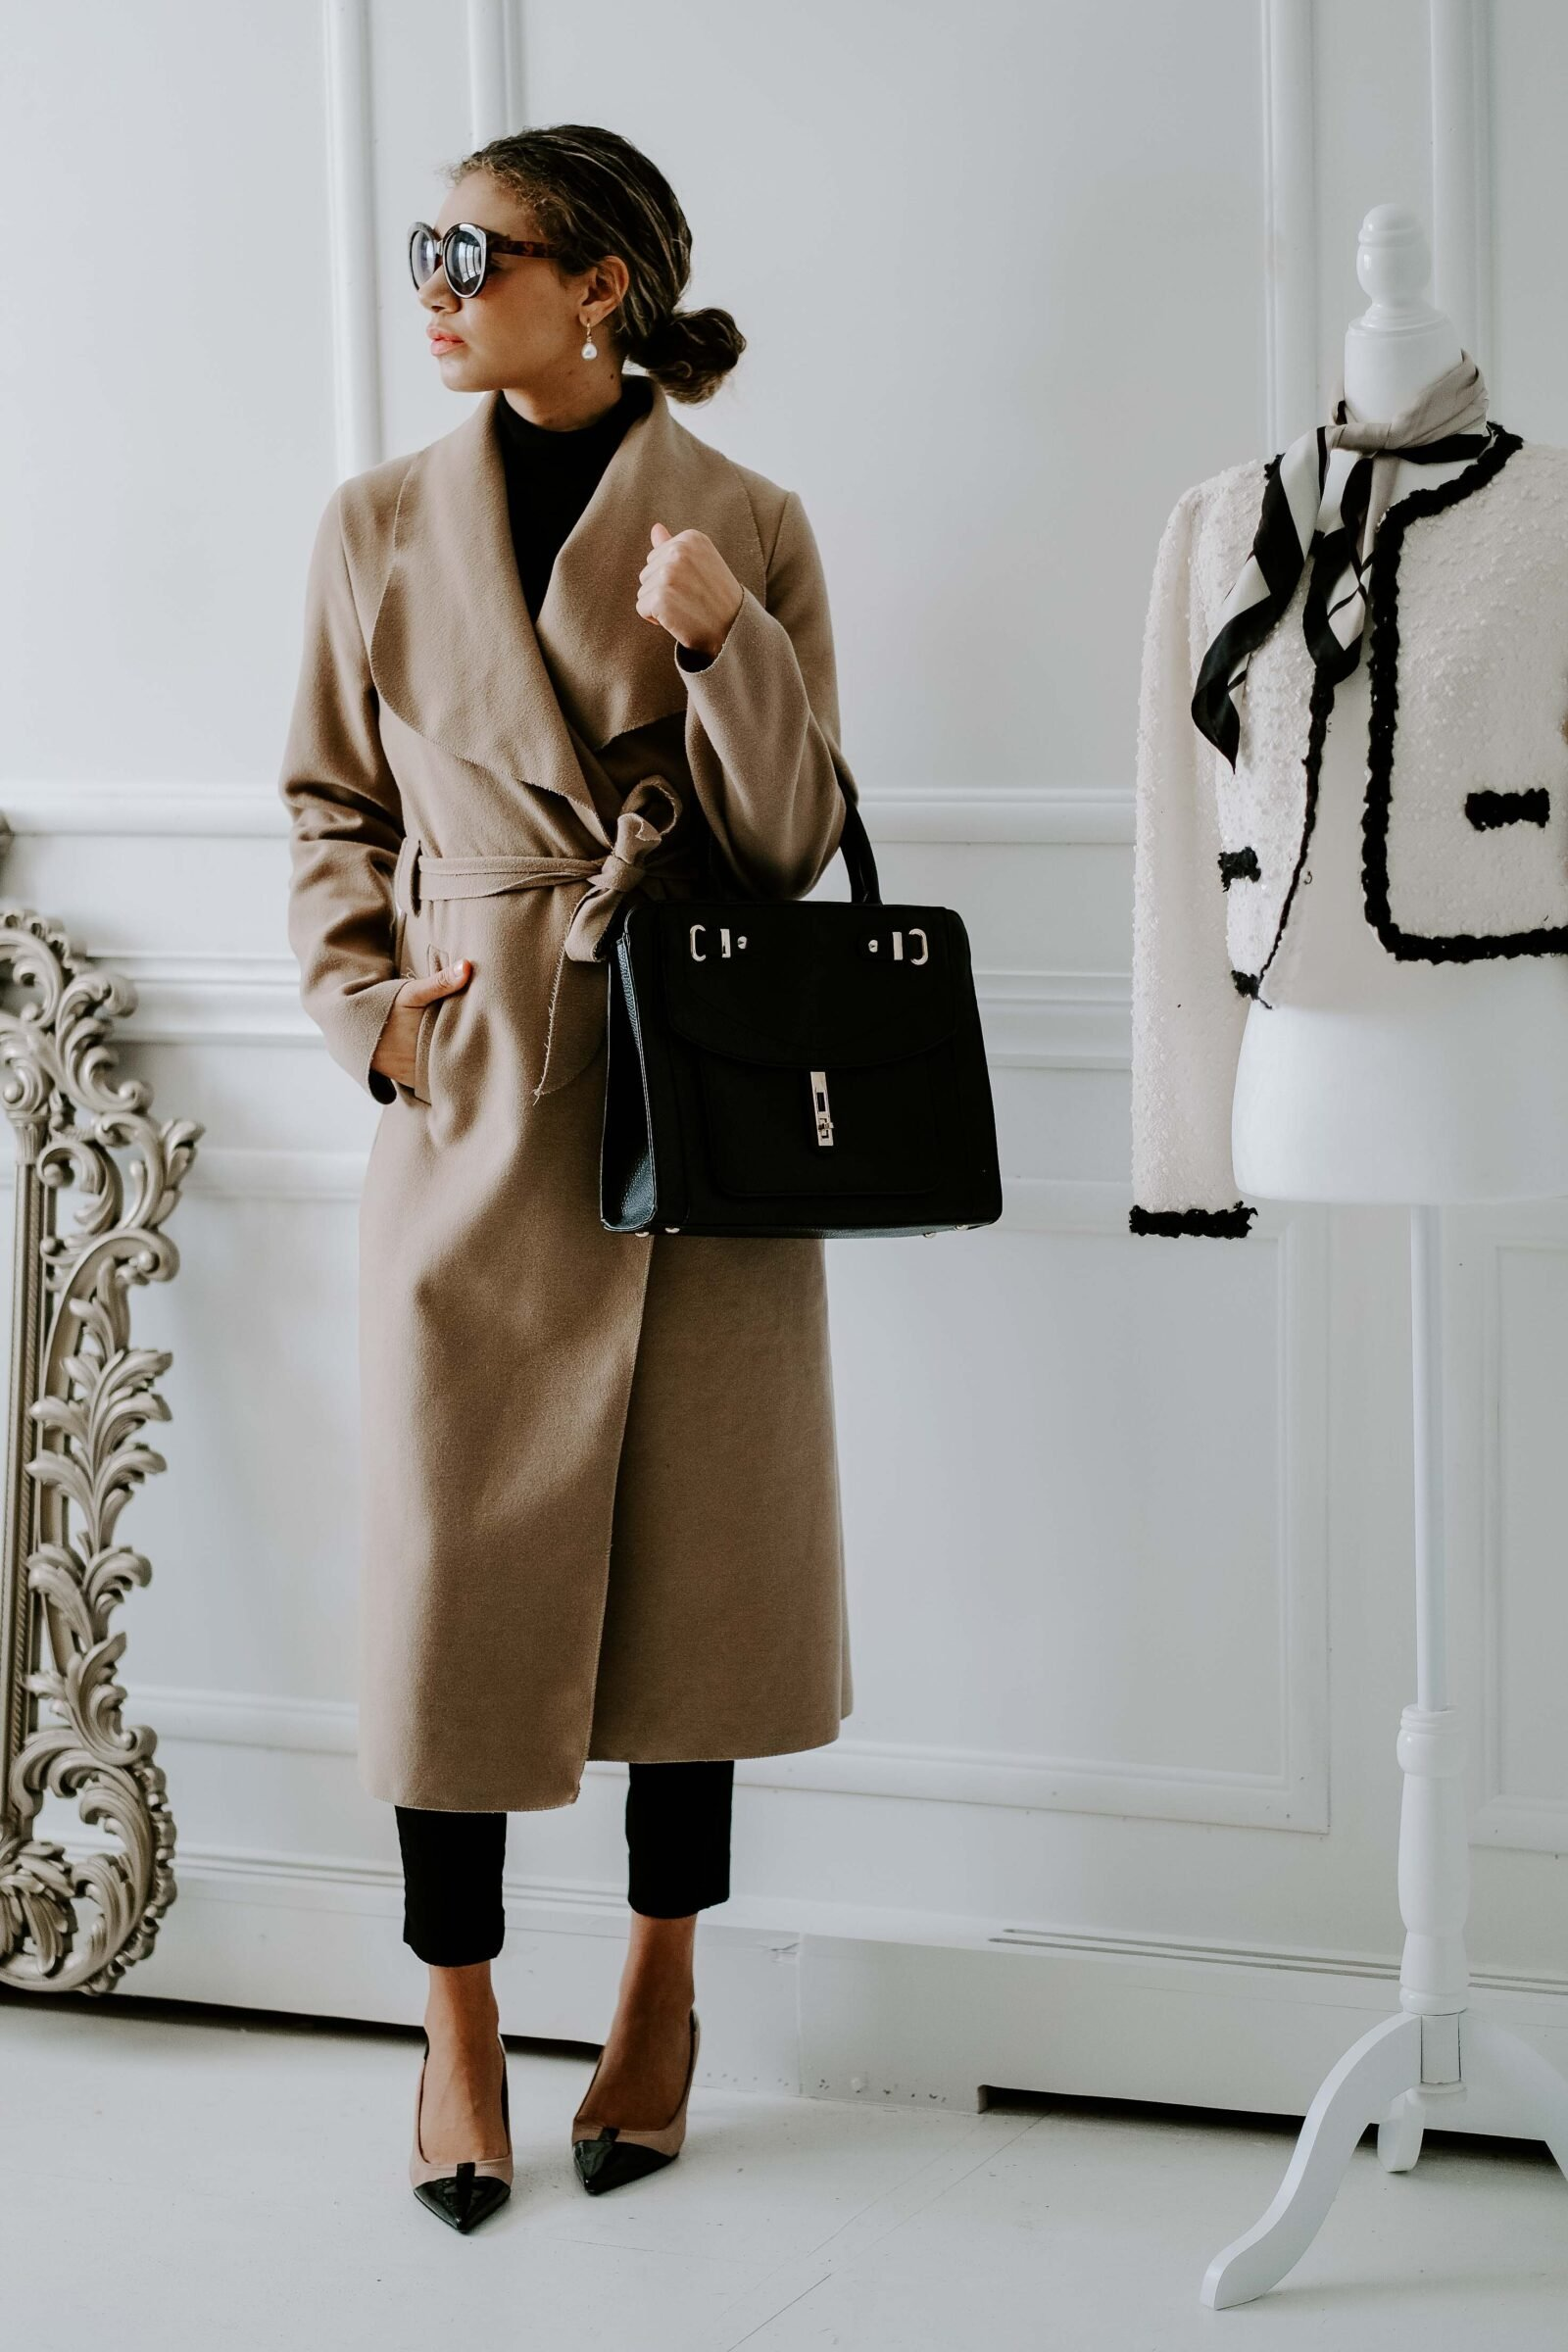 20 Tips on How to Look Expensive + What to Avoid   MY CHIC OBSESSION